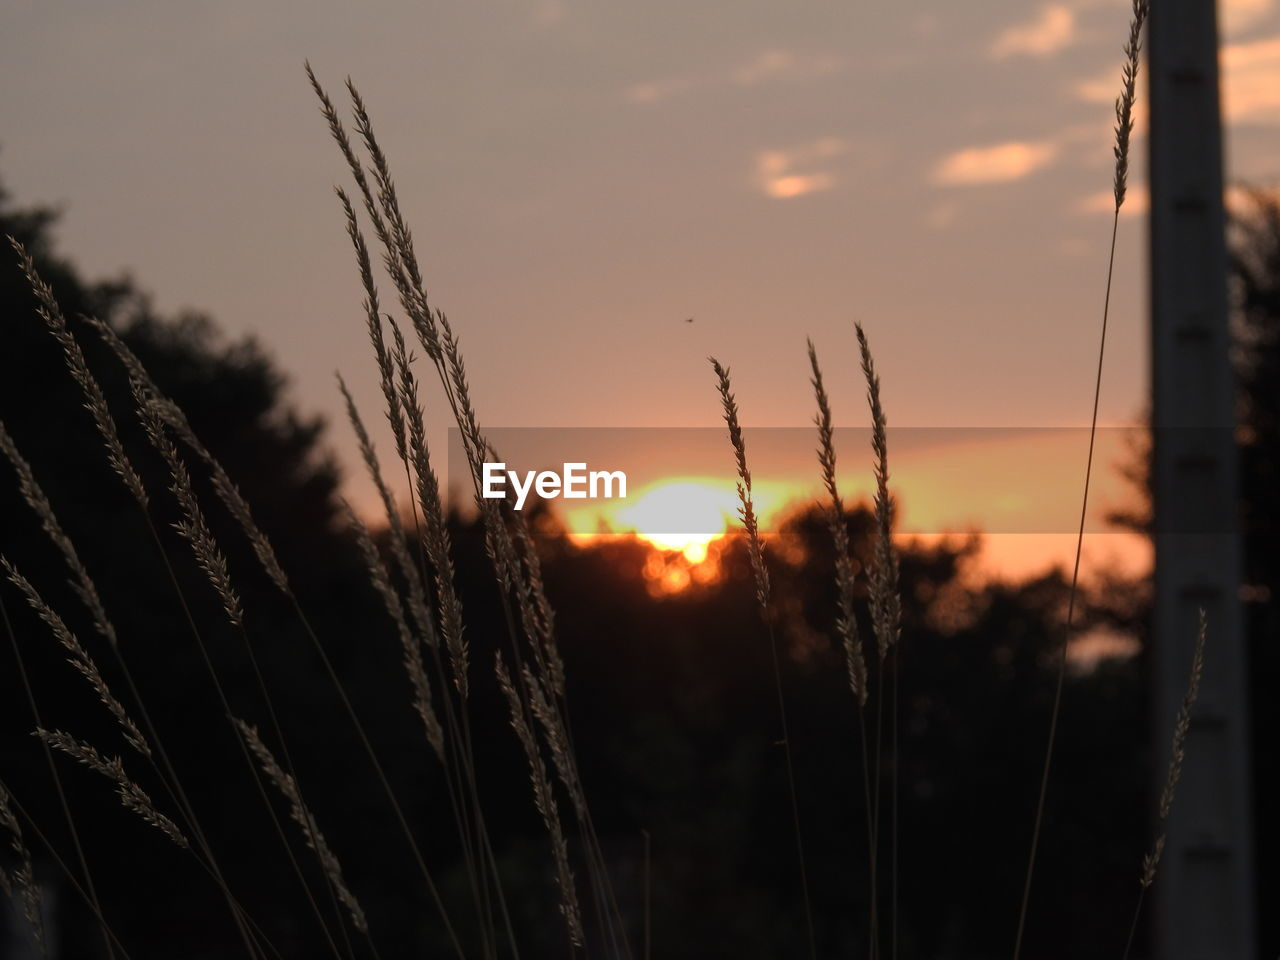 growth, sunset, nature, beauty in nature, plant, tranquil scene, farm, tranquility, agriculture, field, scenics, cereal plant, crop, no people, wheat, outdoors, silhouette, rural scene, ear of wheat, sky, close-up, day